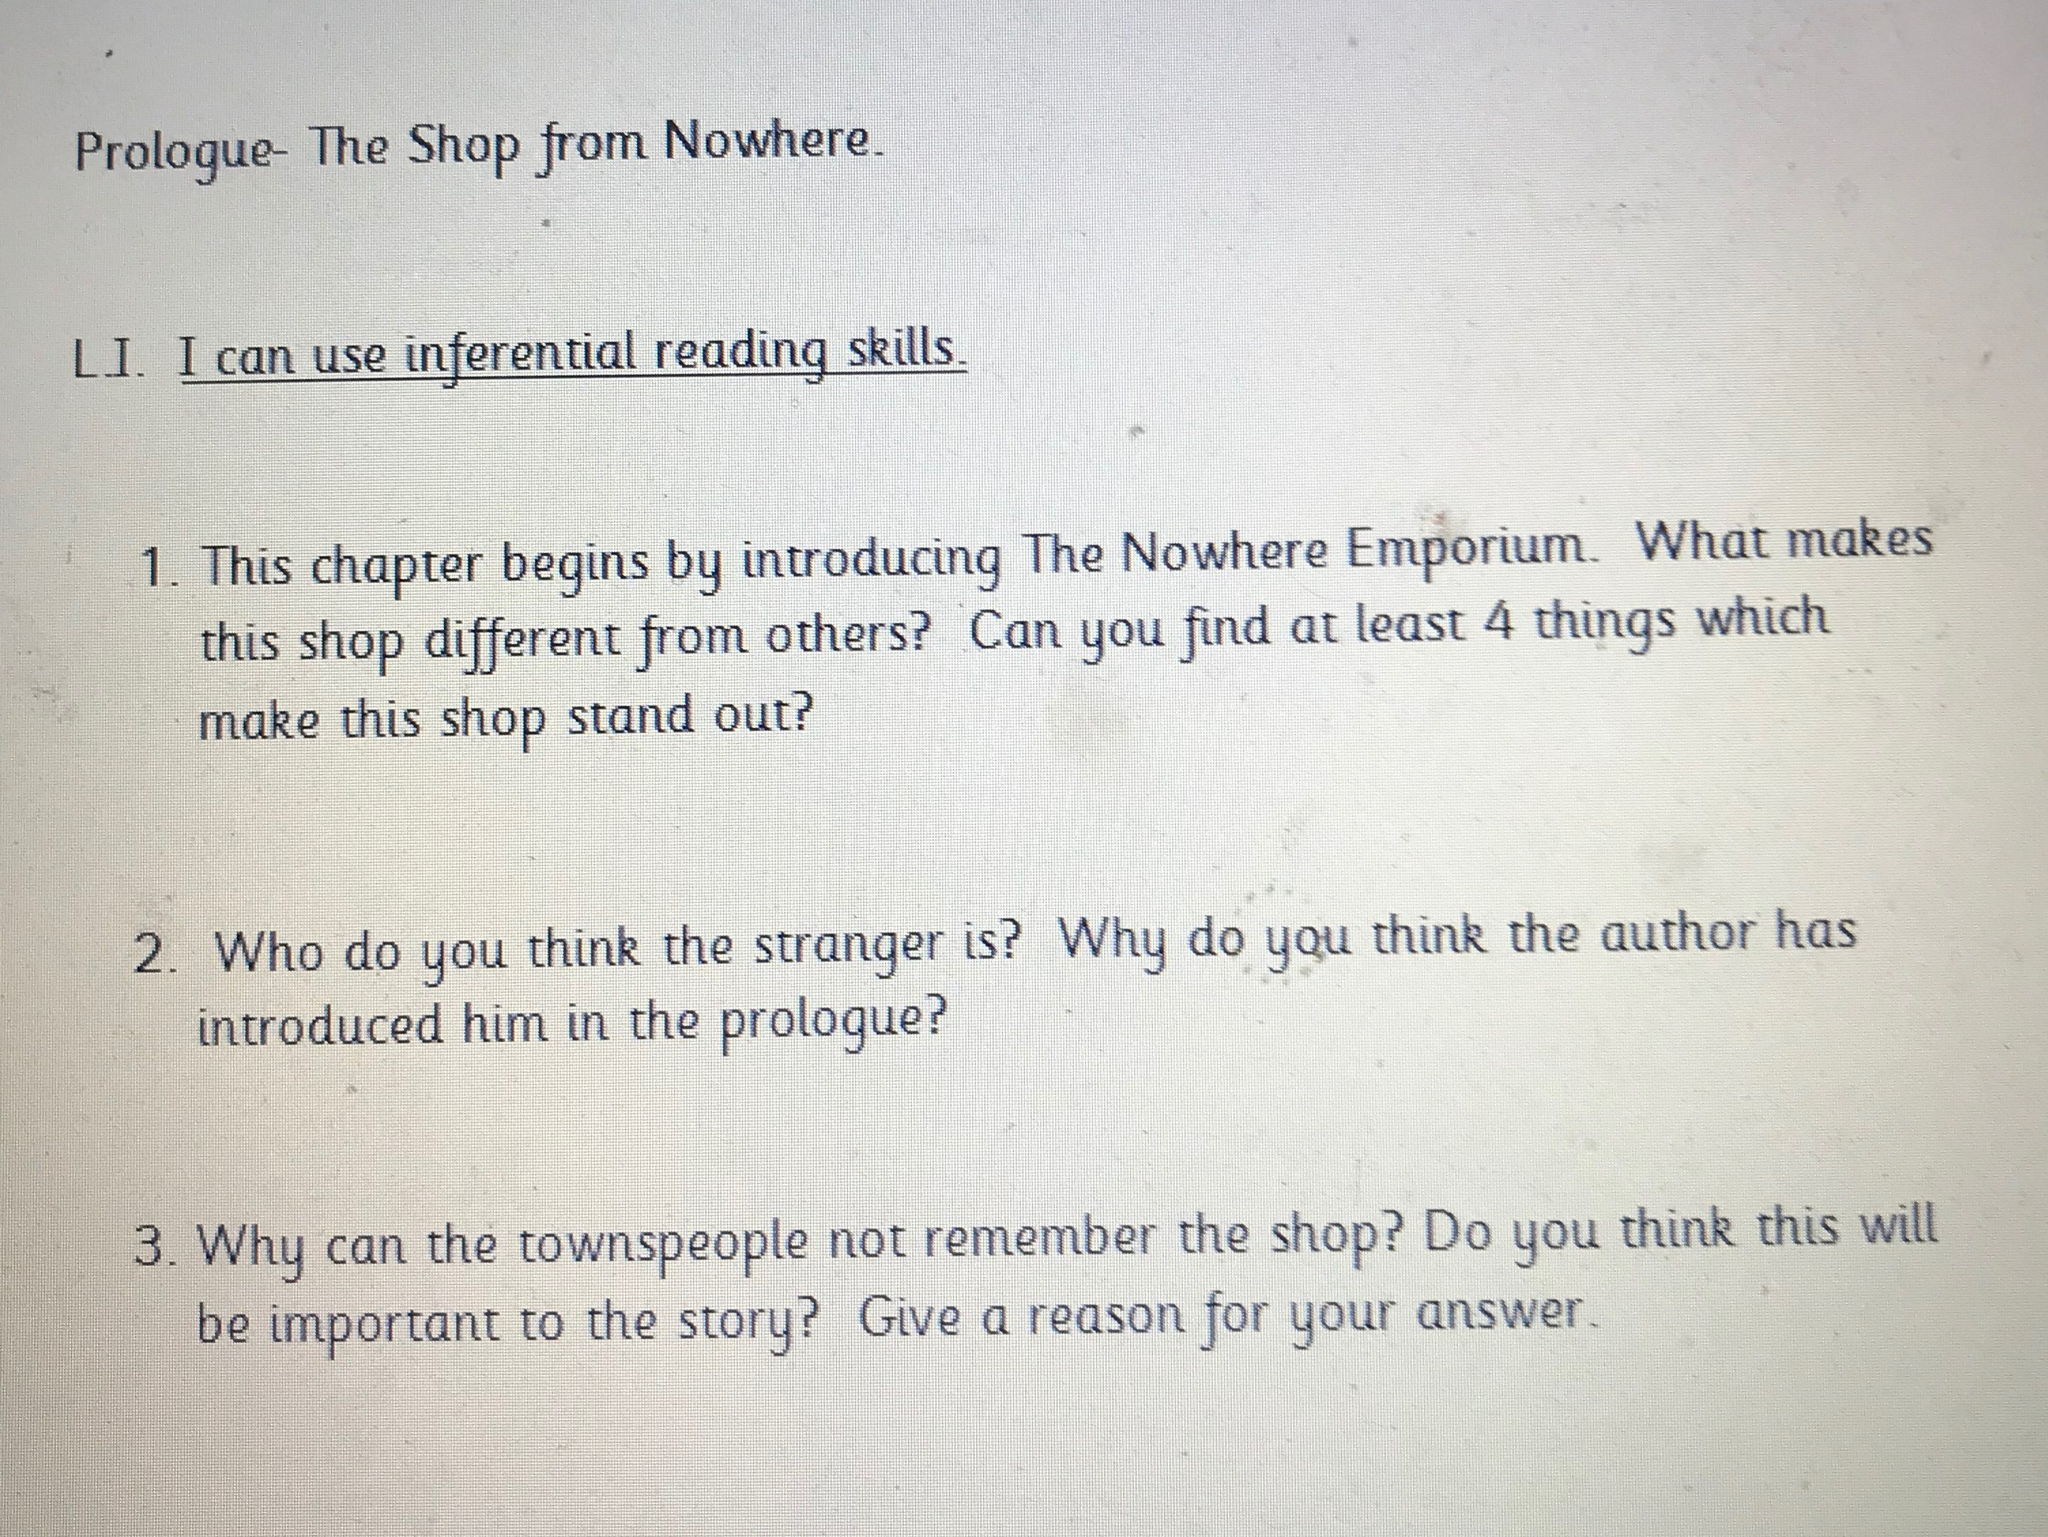 Nowhere emporium 1 weeks guided reading planning year 4/5